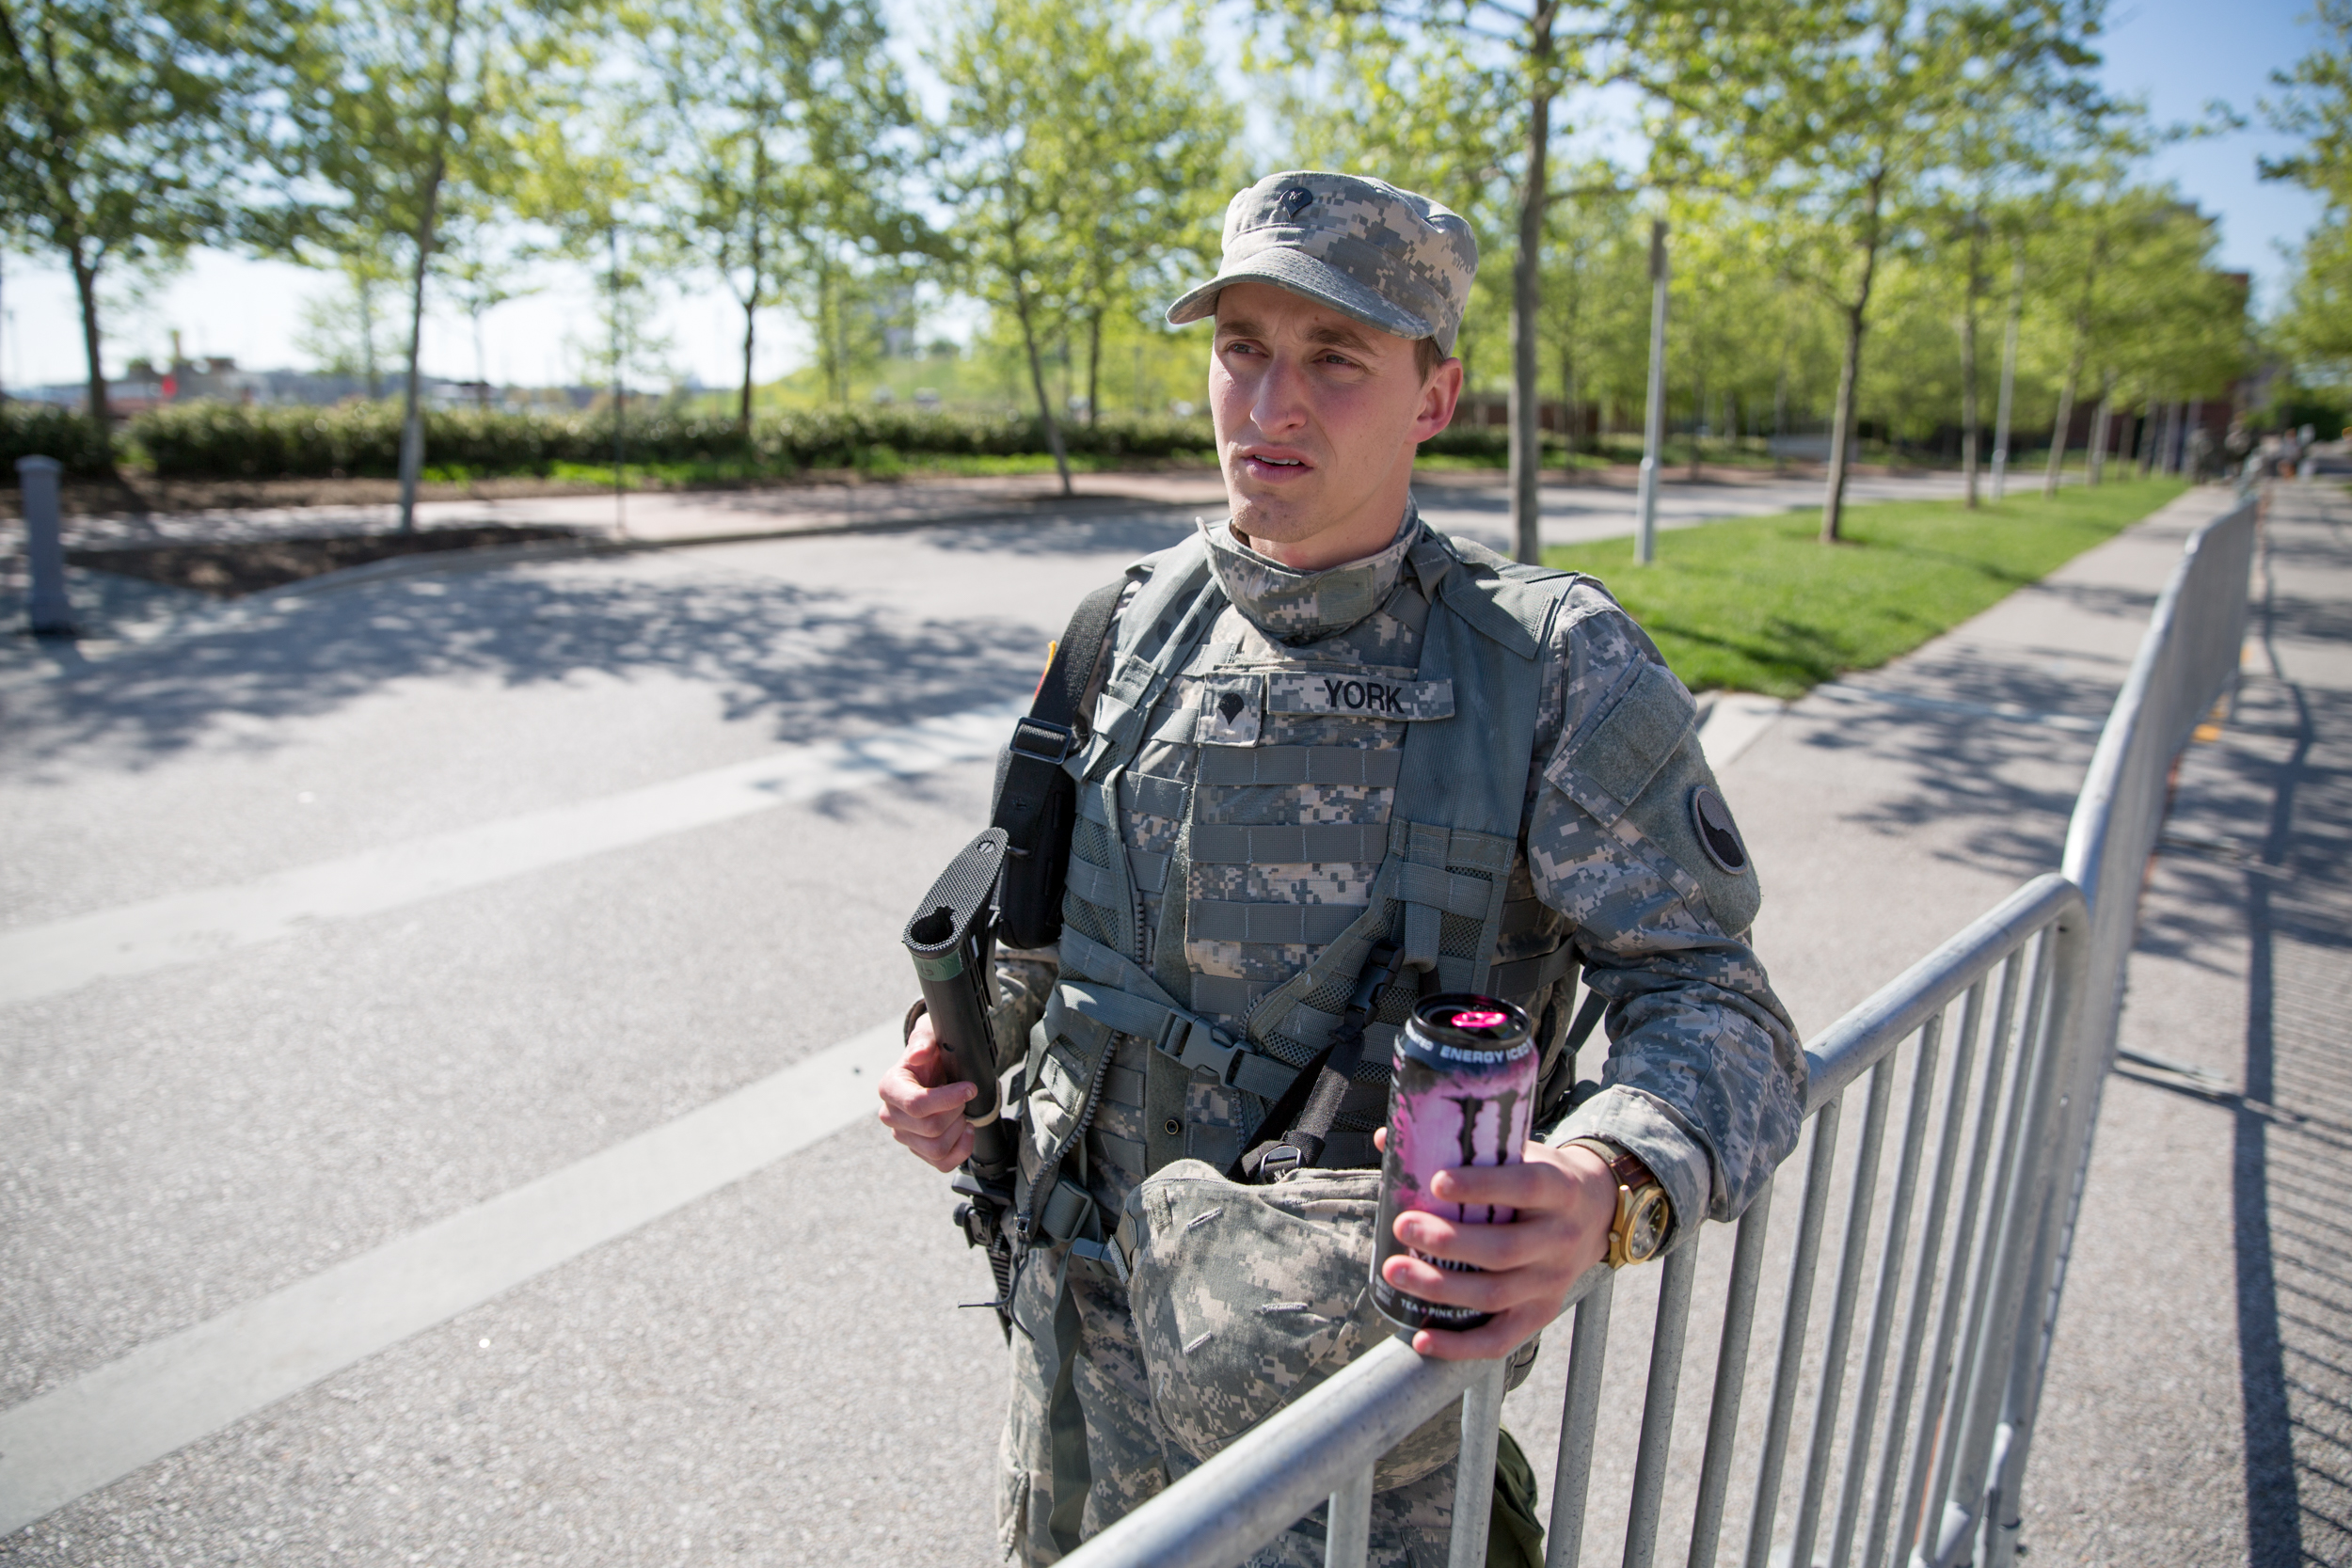 Private York of the Maryland National Guard as he serves to protect the Inner Harbor area of Baltimore, Maryland